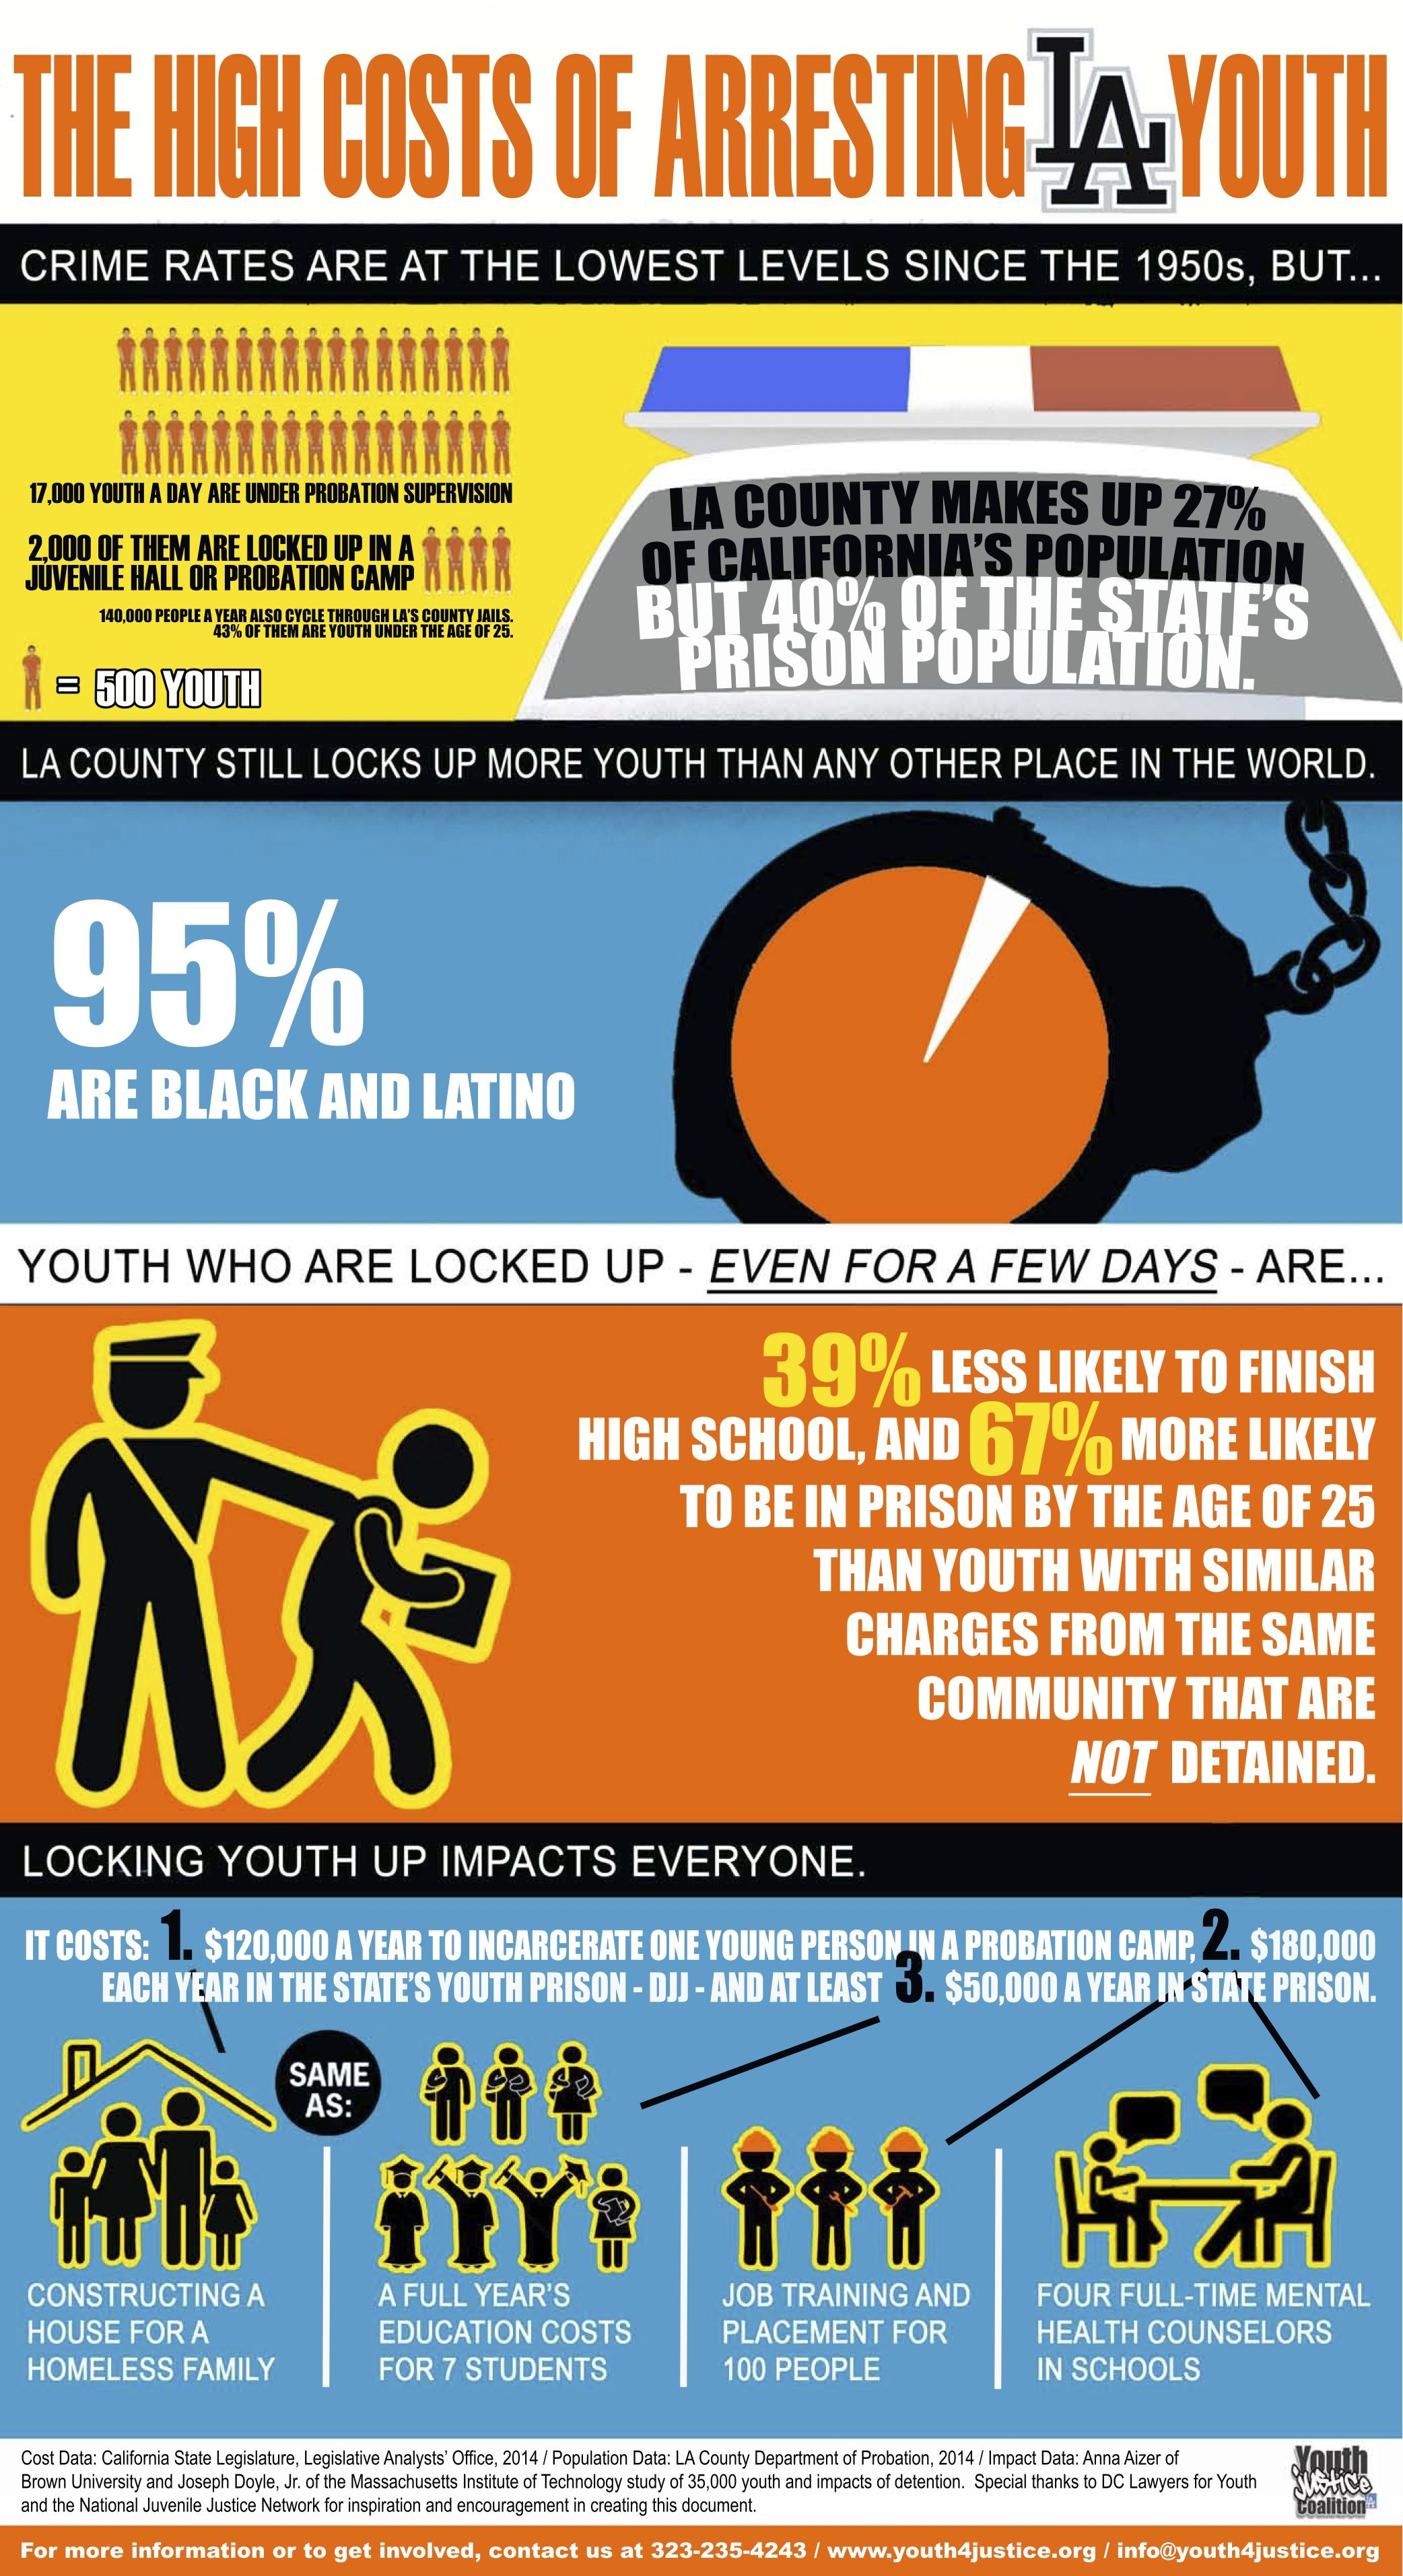 Fact Sheet Made By Our Partners At The Youthjusticecoalition For